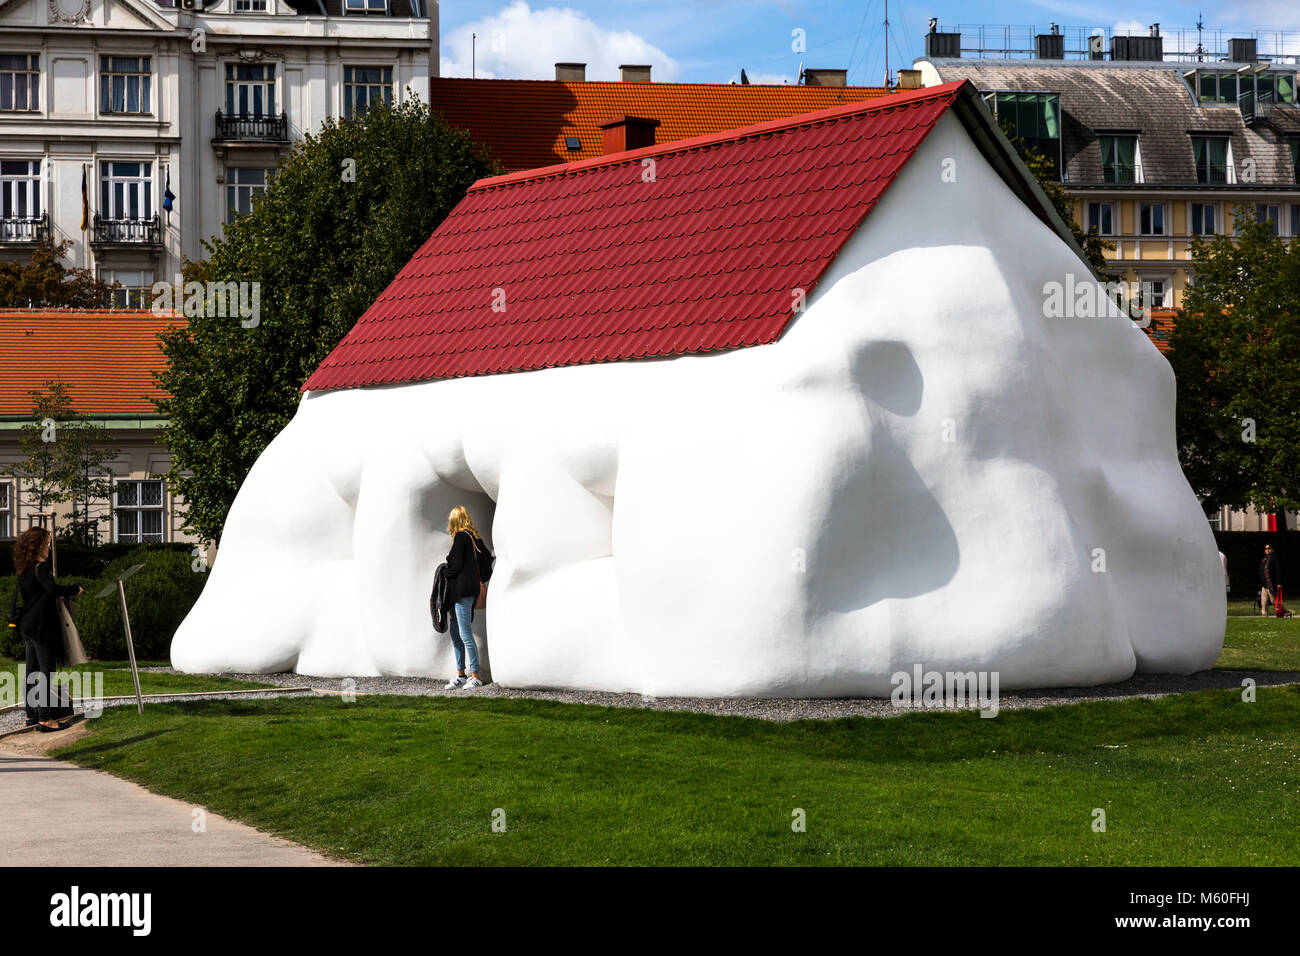 Erwin Wurm's Fat House sculpture on display at Belvedere Palace, Wien, Vienna, Austria. - Stock Image